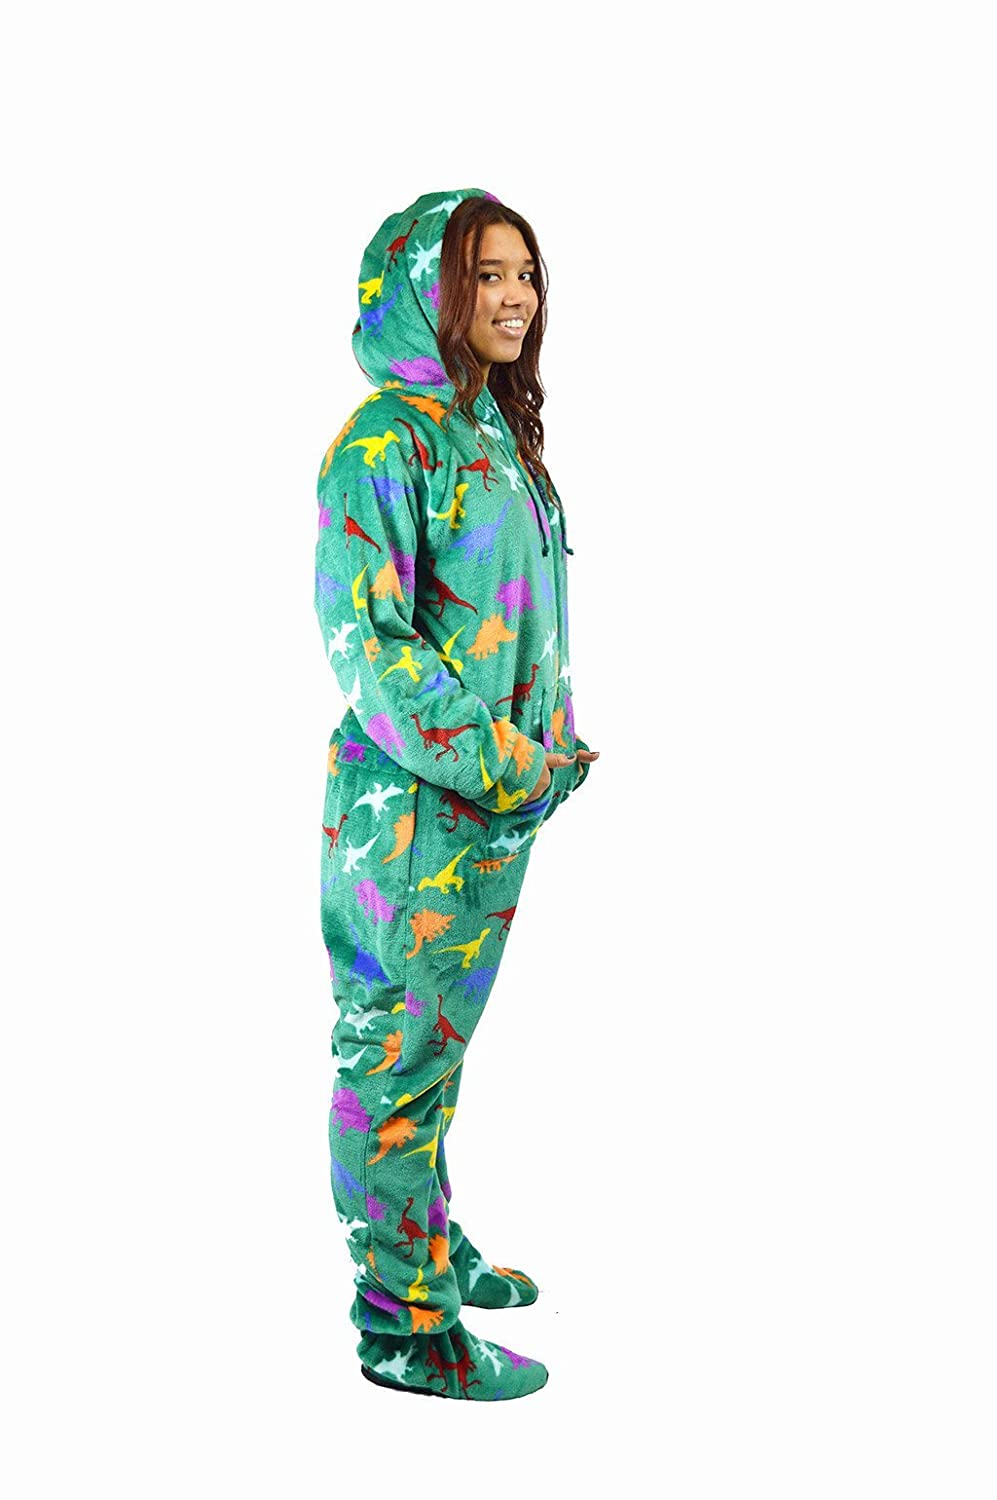 DINOTASTIC The Snooze Shack Ultra Plush Onesie Pajamas with Drop Seat Bottom and Feet